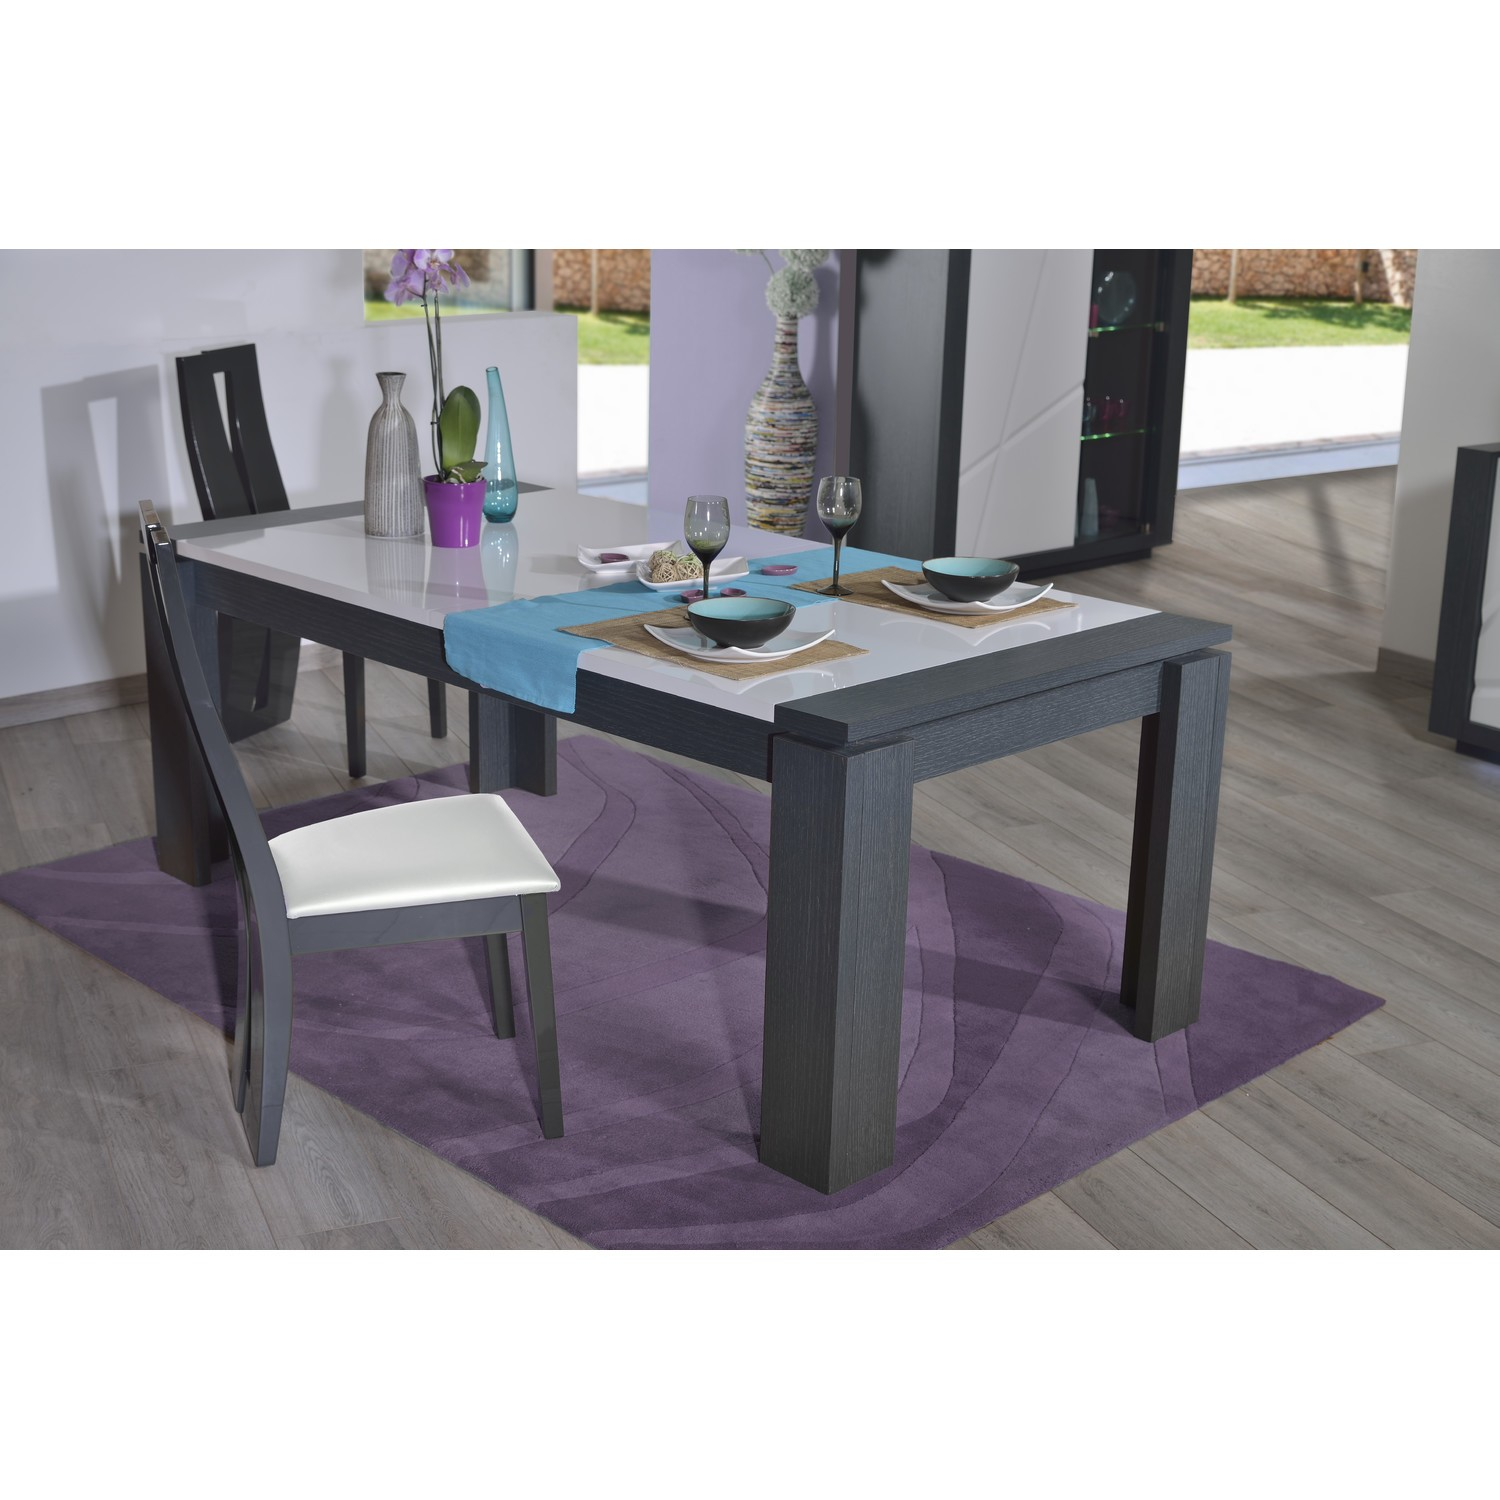 Quartz extendable dining table with dark wood body for Quartz top dining table